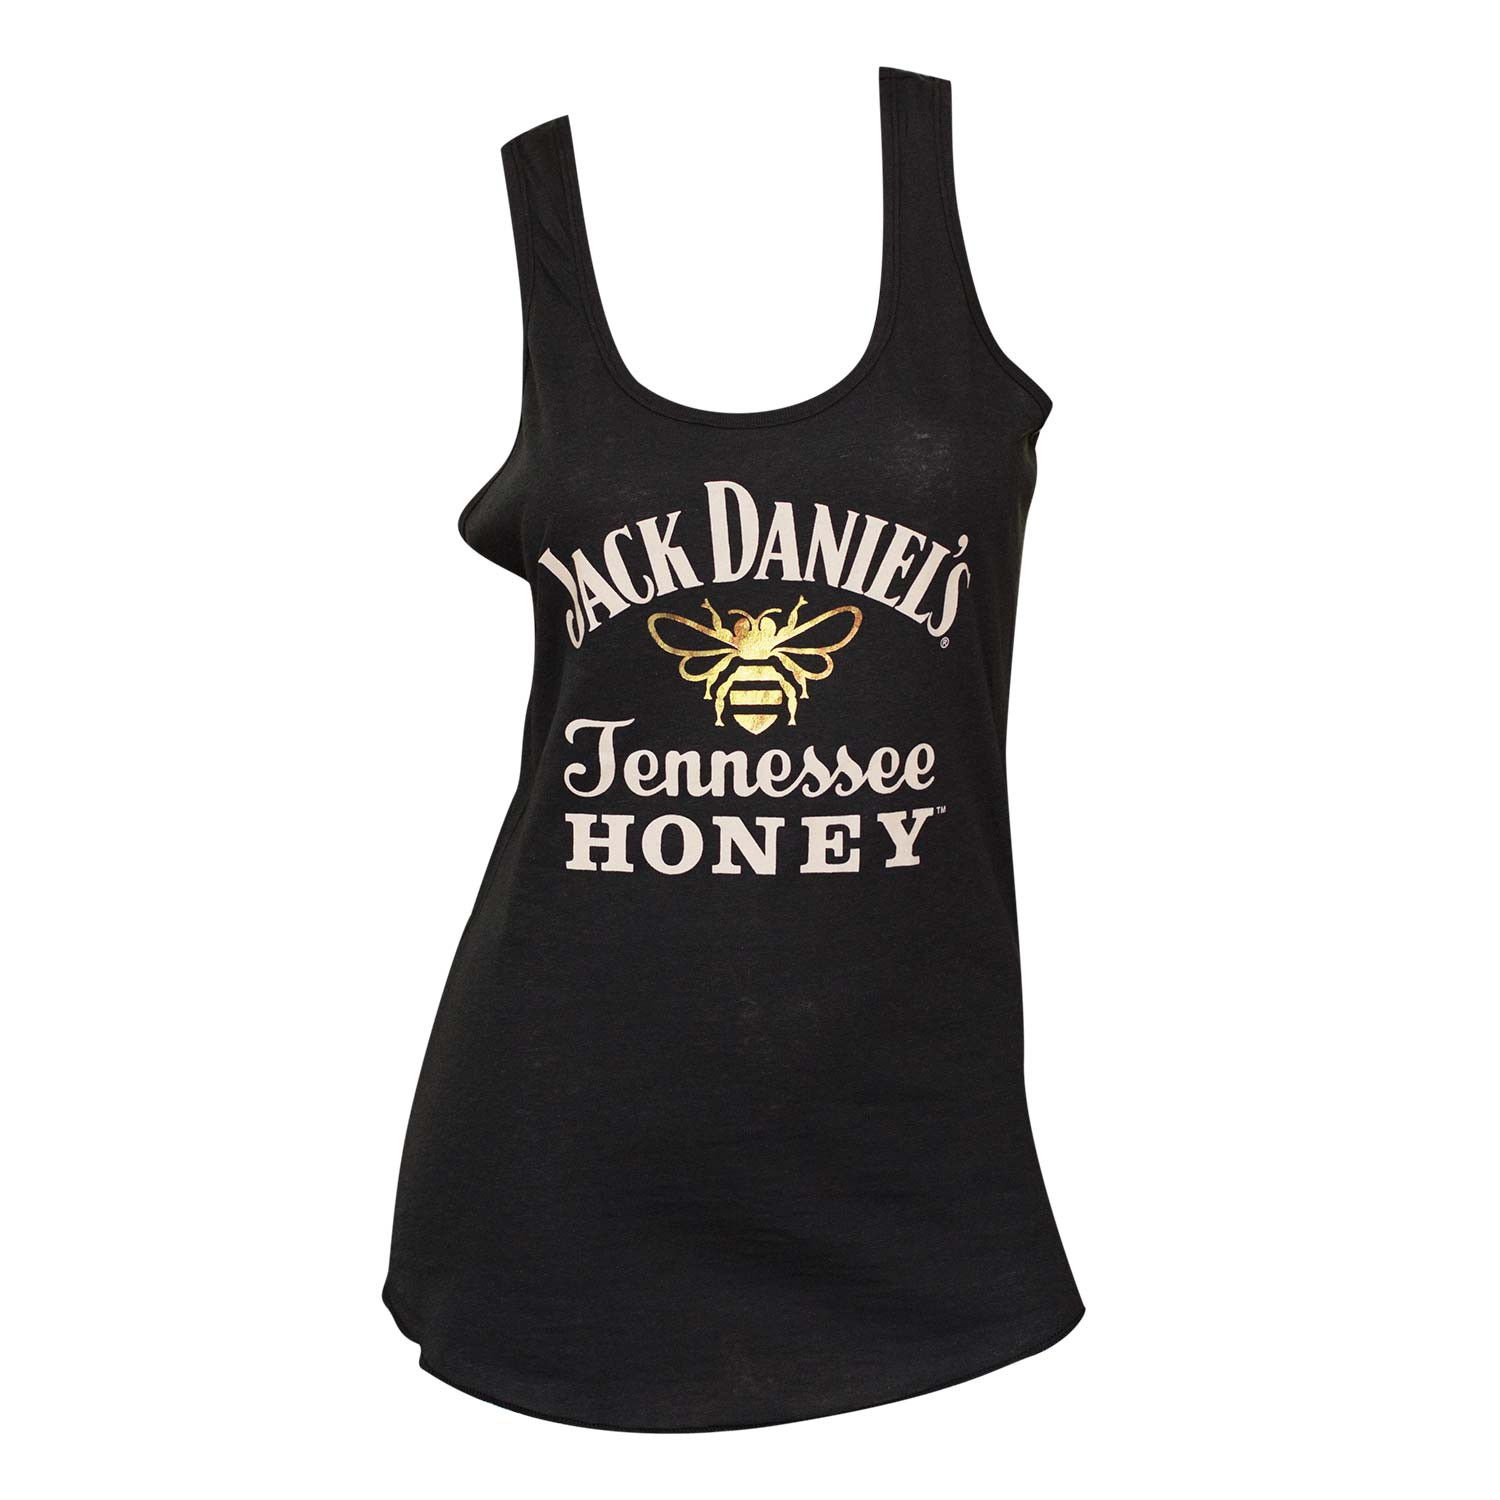 Women's Jack Daniels Honey Tank Top